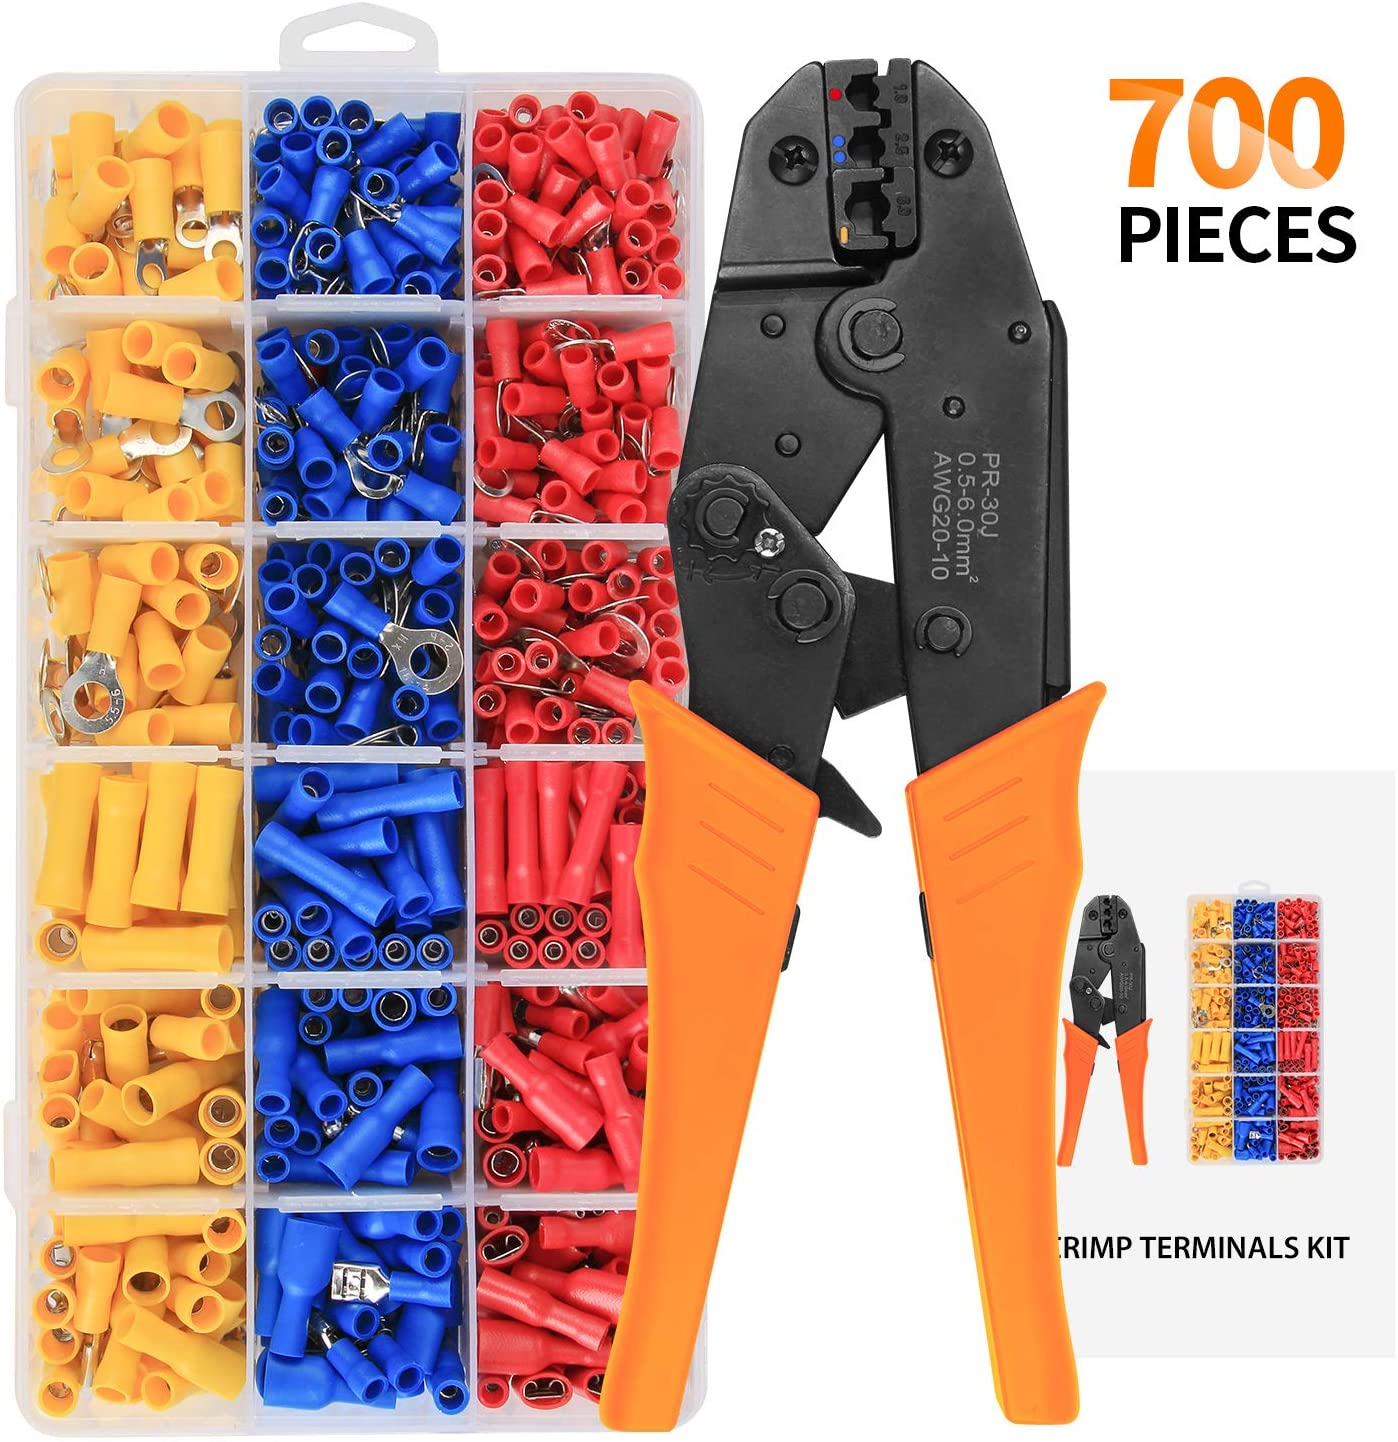 HS-30J Crimping Tools Pliers For 22-10 AWG 0.5-6.0mm2 Of Insulated Car Auto Terminals & Connectors Crimping Plier Wire